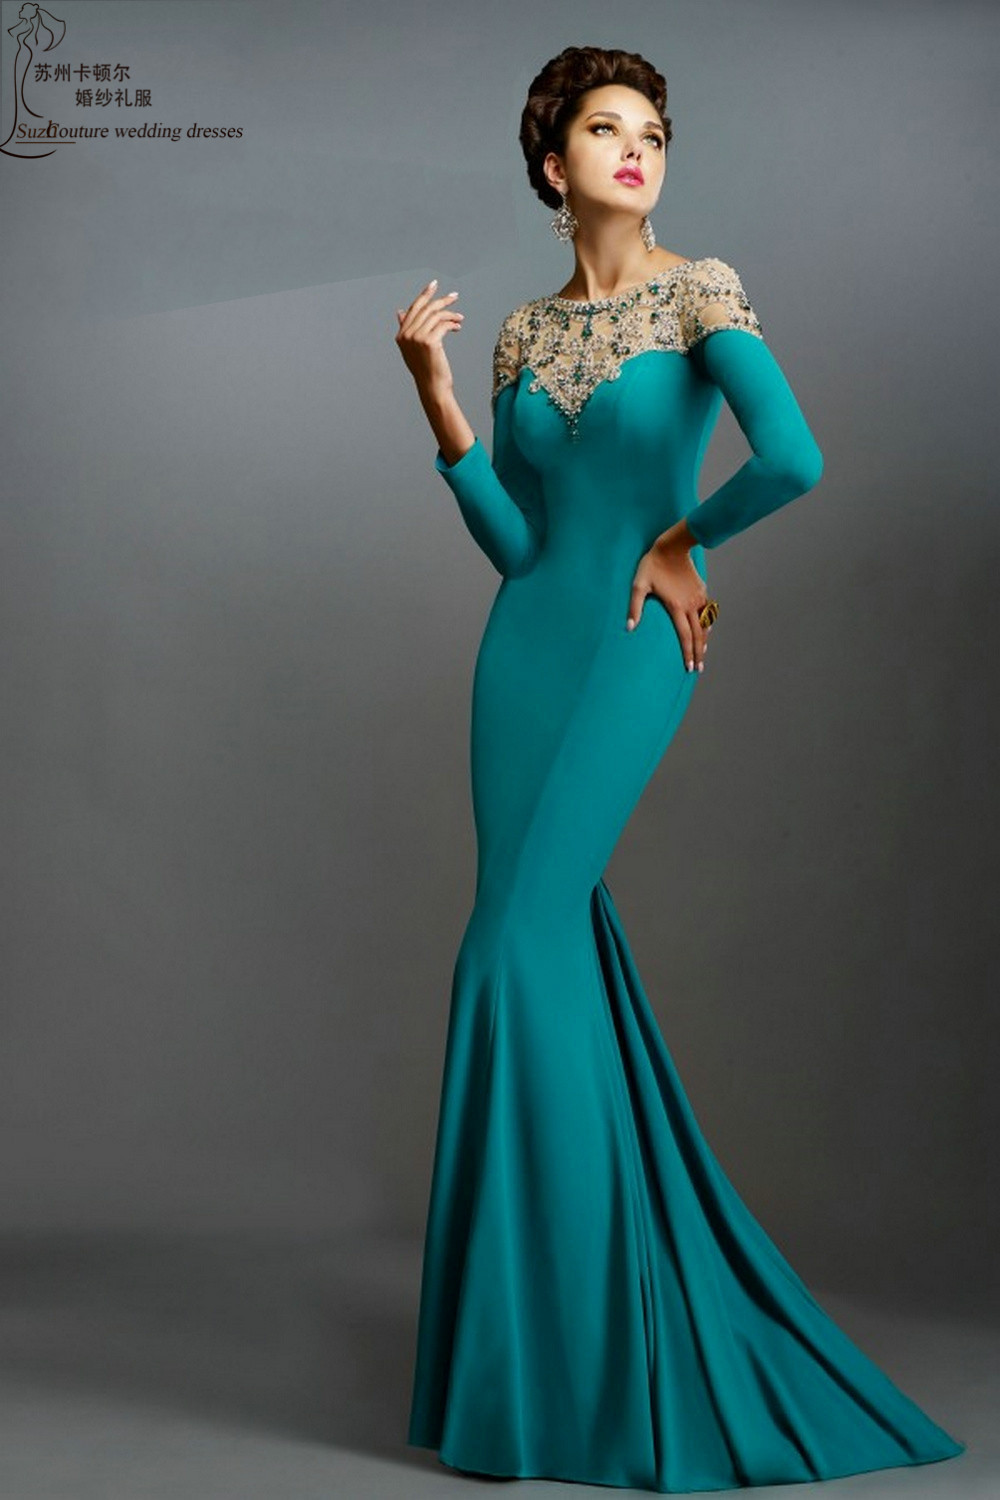 Long Sleeved Evening Dresses Cheap - Prom Dresses 2018